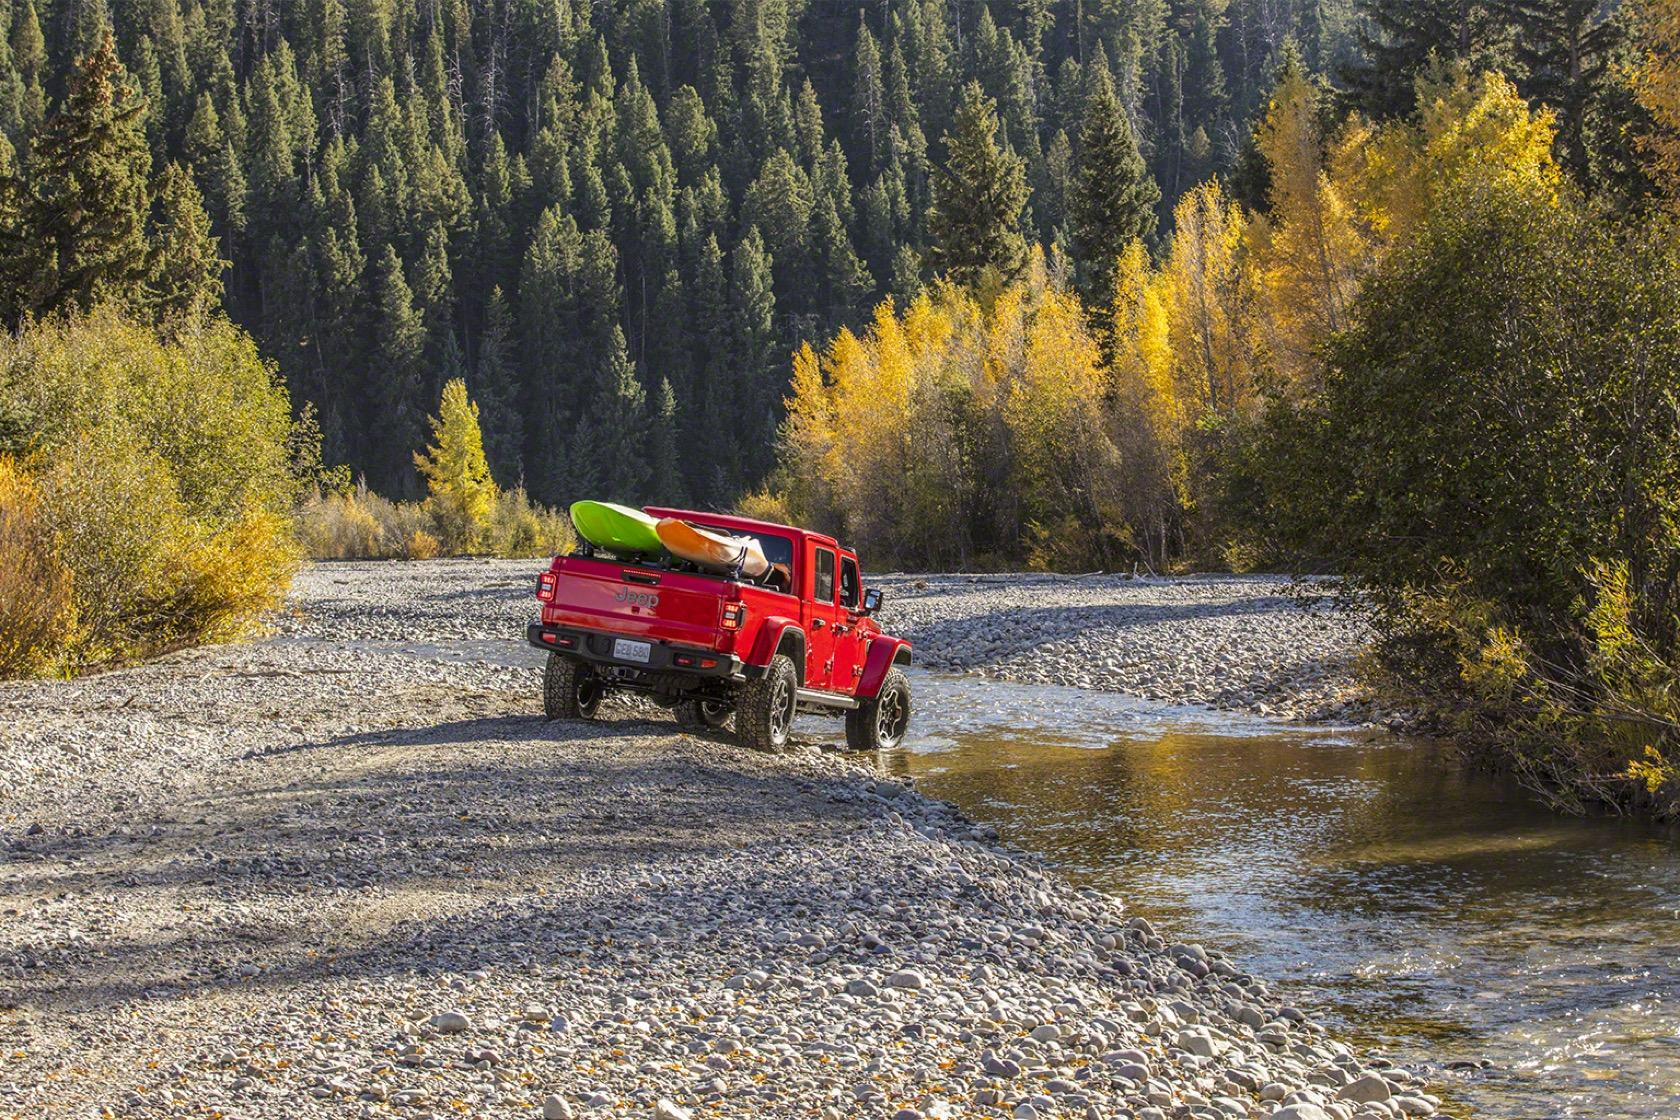 2020 Jeep Gladiator pickup pairs Wrangler style with go